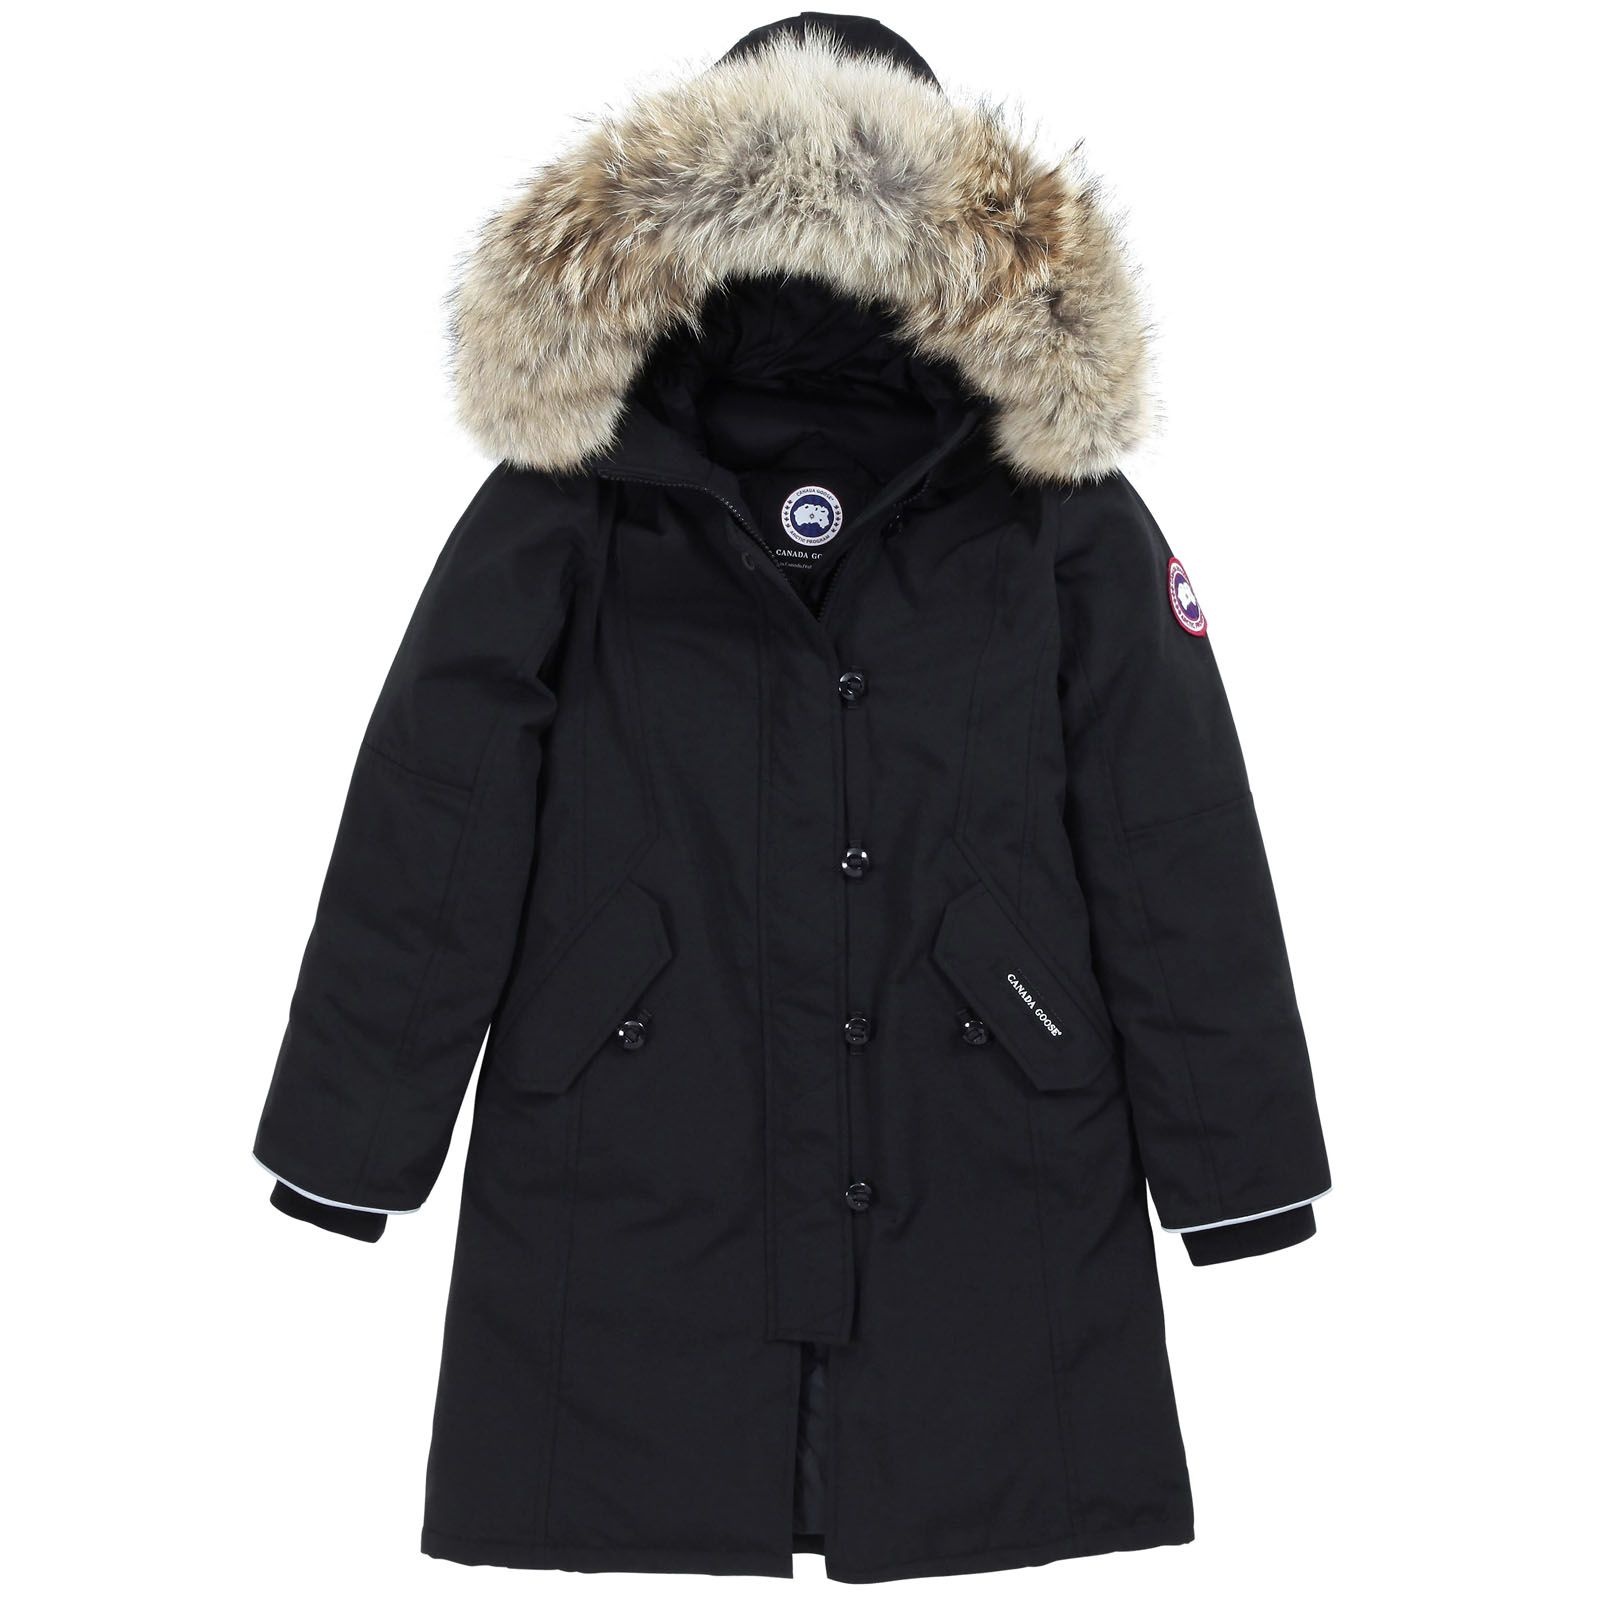 Canada Goose hats sale official - Parka longue imperm��able, capuche amovible, rembourrage en plumes ...